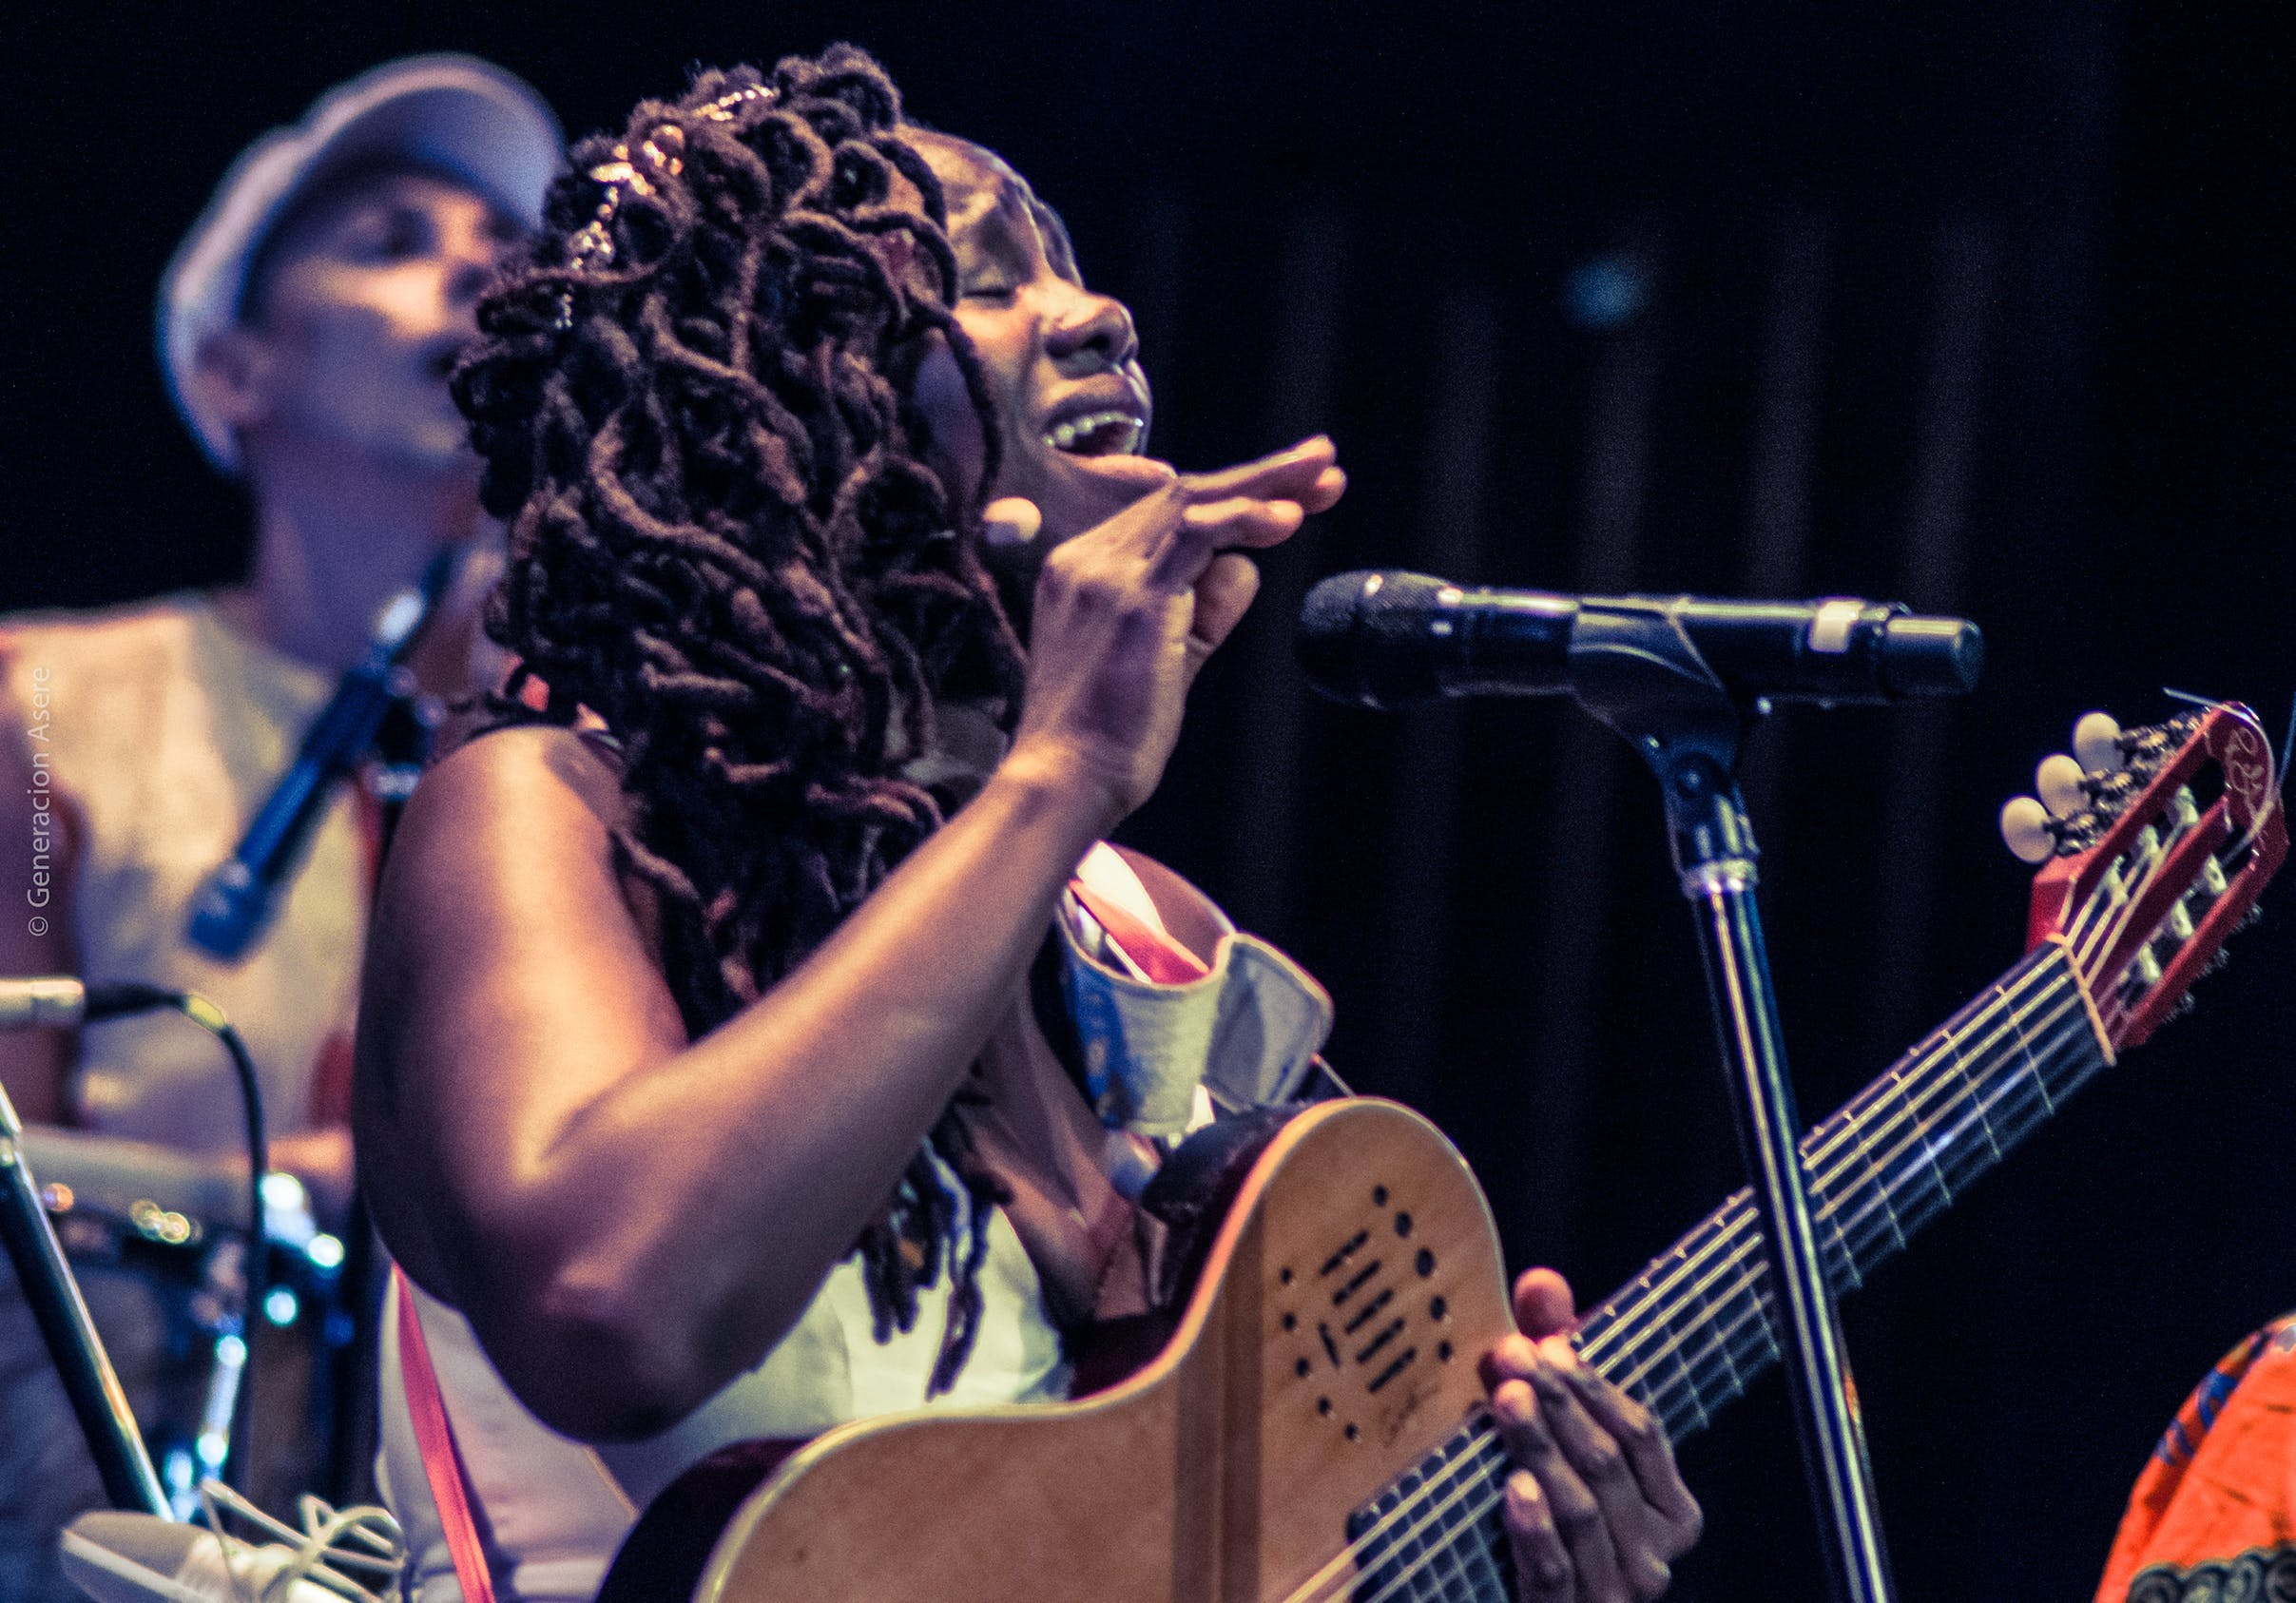 <p>FUNDarte&#39;s From the Barrio to the Mainstage. Photo by Generacion Asere of Inez Barlatier</p>